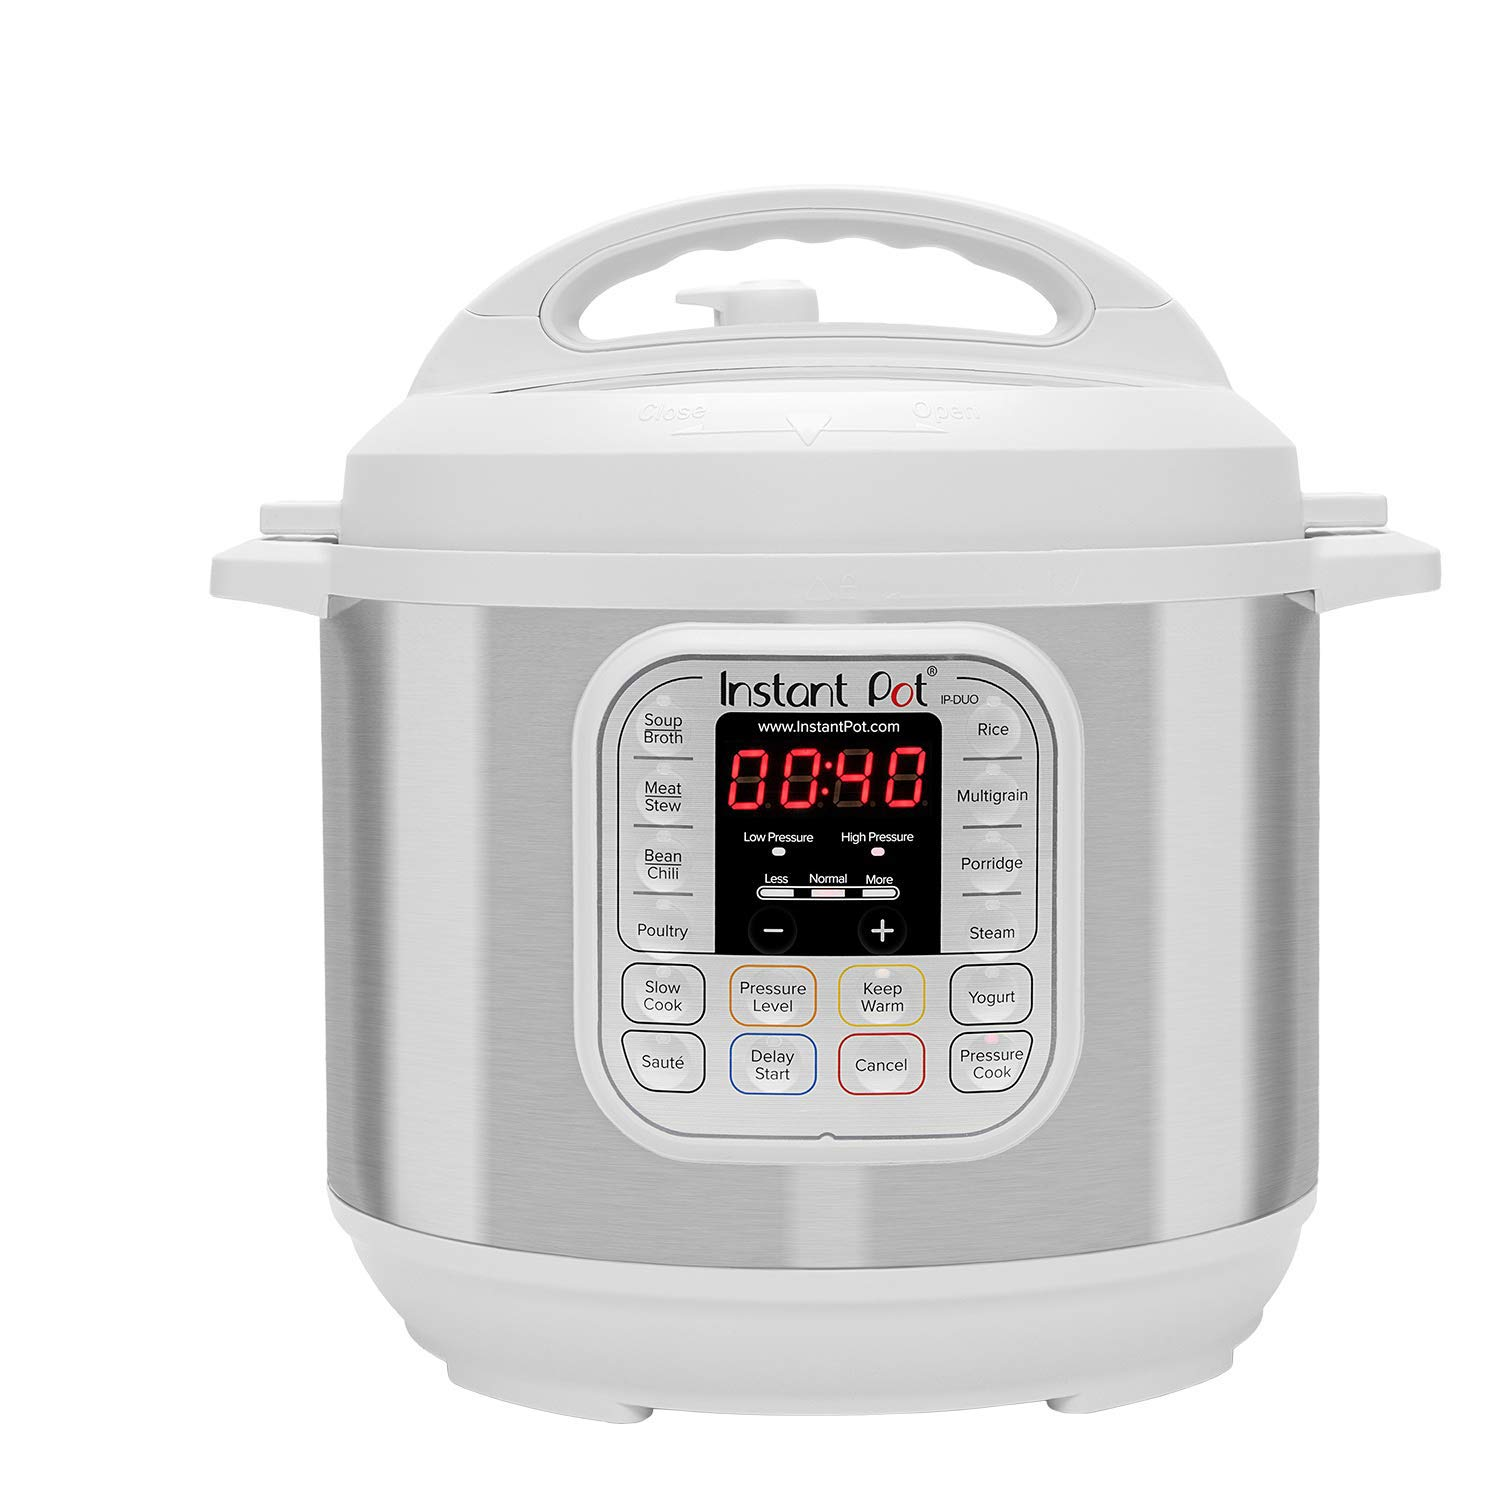 They've been eyeing a programmable multi-cooker for a while now, so make the leap for them with this affordable 6-quart 7-in-1 Instant Pot, which features cooking modes for steamer, slow cooker, pressure cooker, yogurt maker, and more. This version also comes in fun colors, including red, teal, and white.